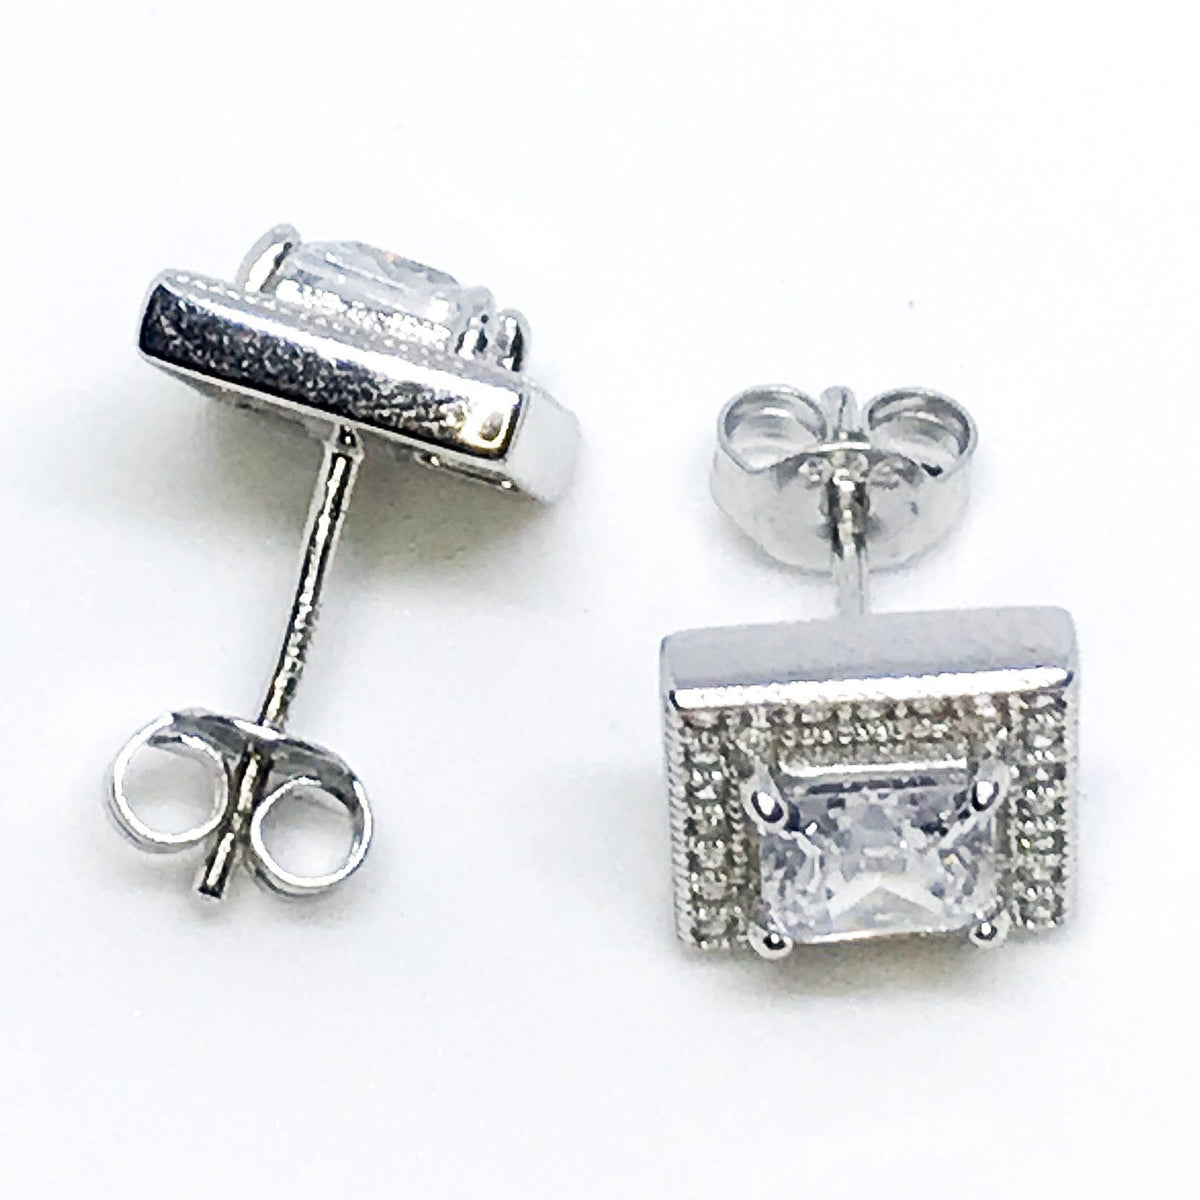 NEW 14K White Gold Layered on Sterling Silver Square Earrings